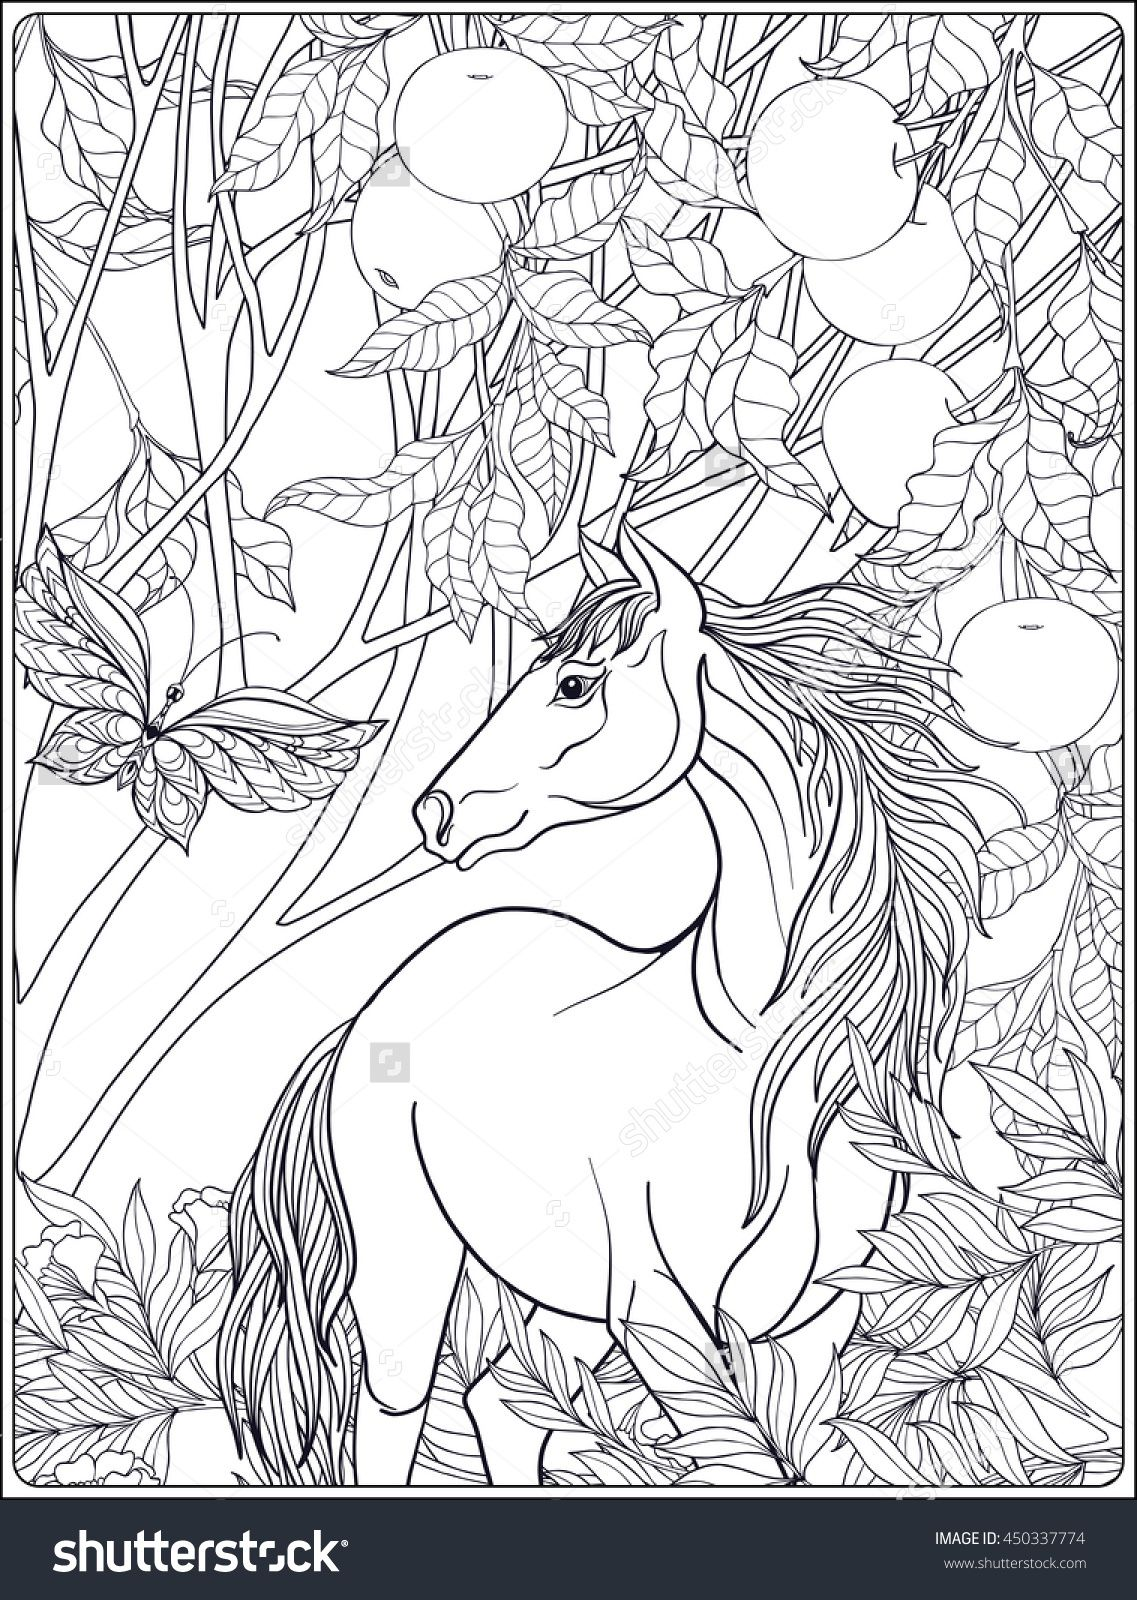 horse in the forest coloring page for adults Shutterstock 450337774 ...